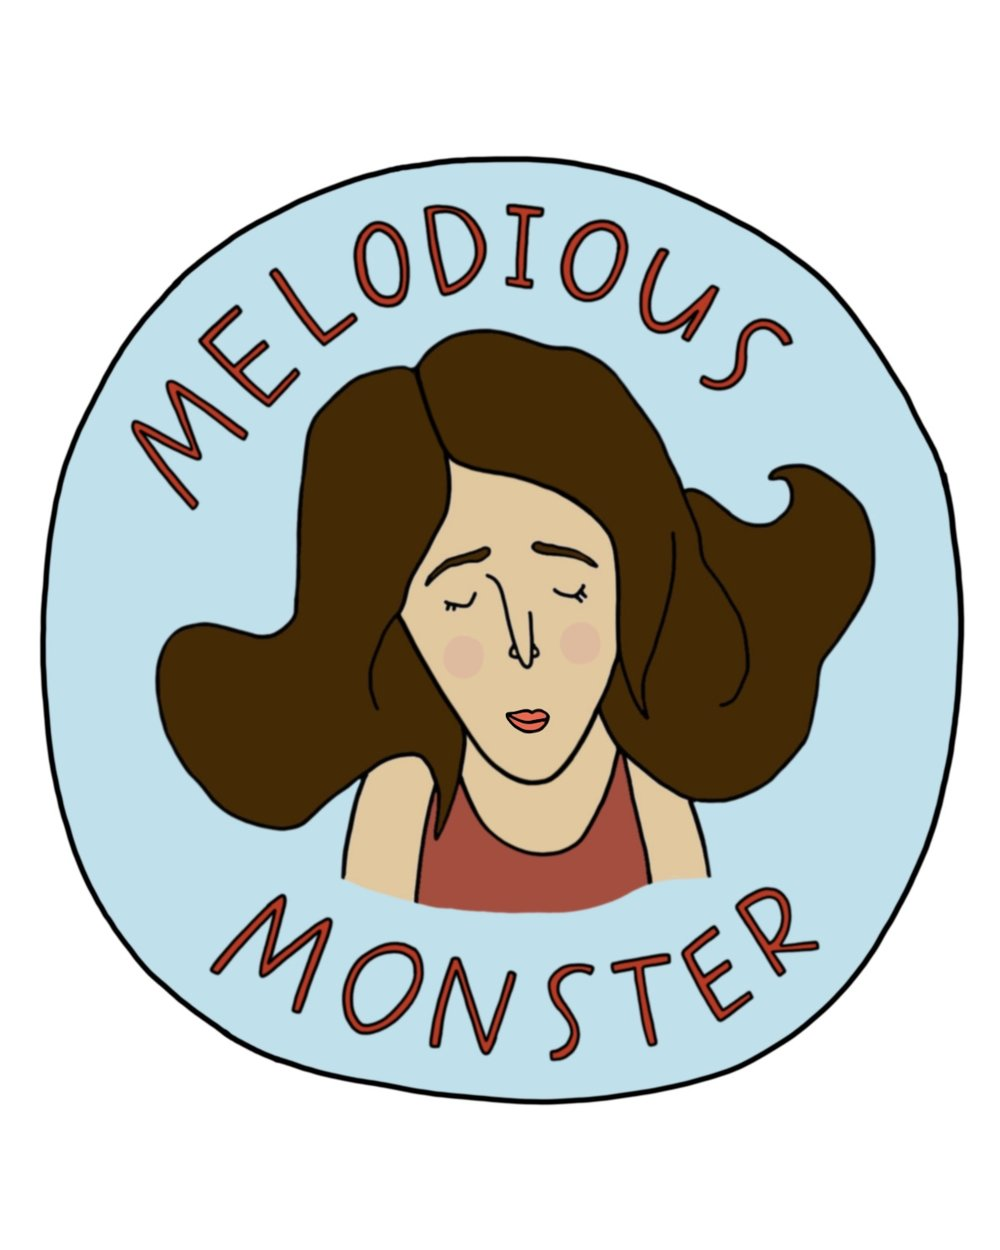 Melodious Monster